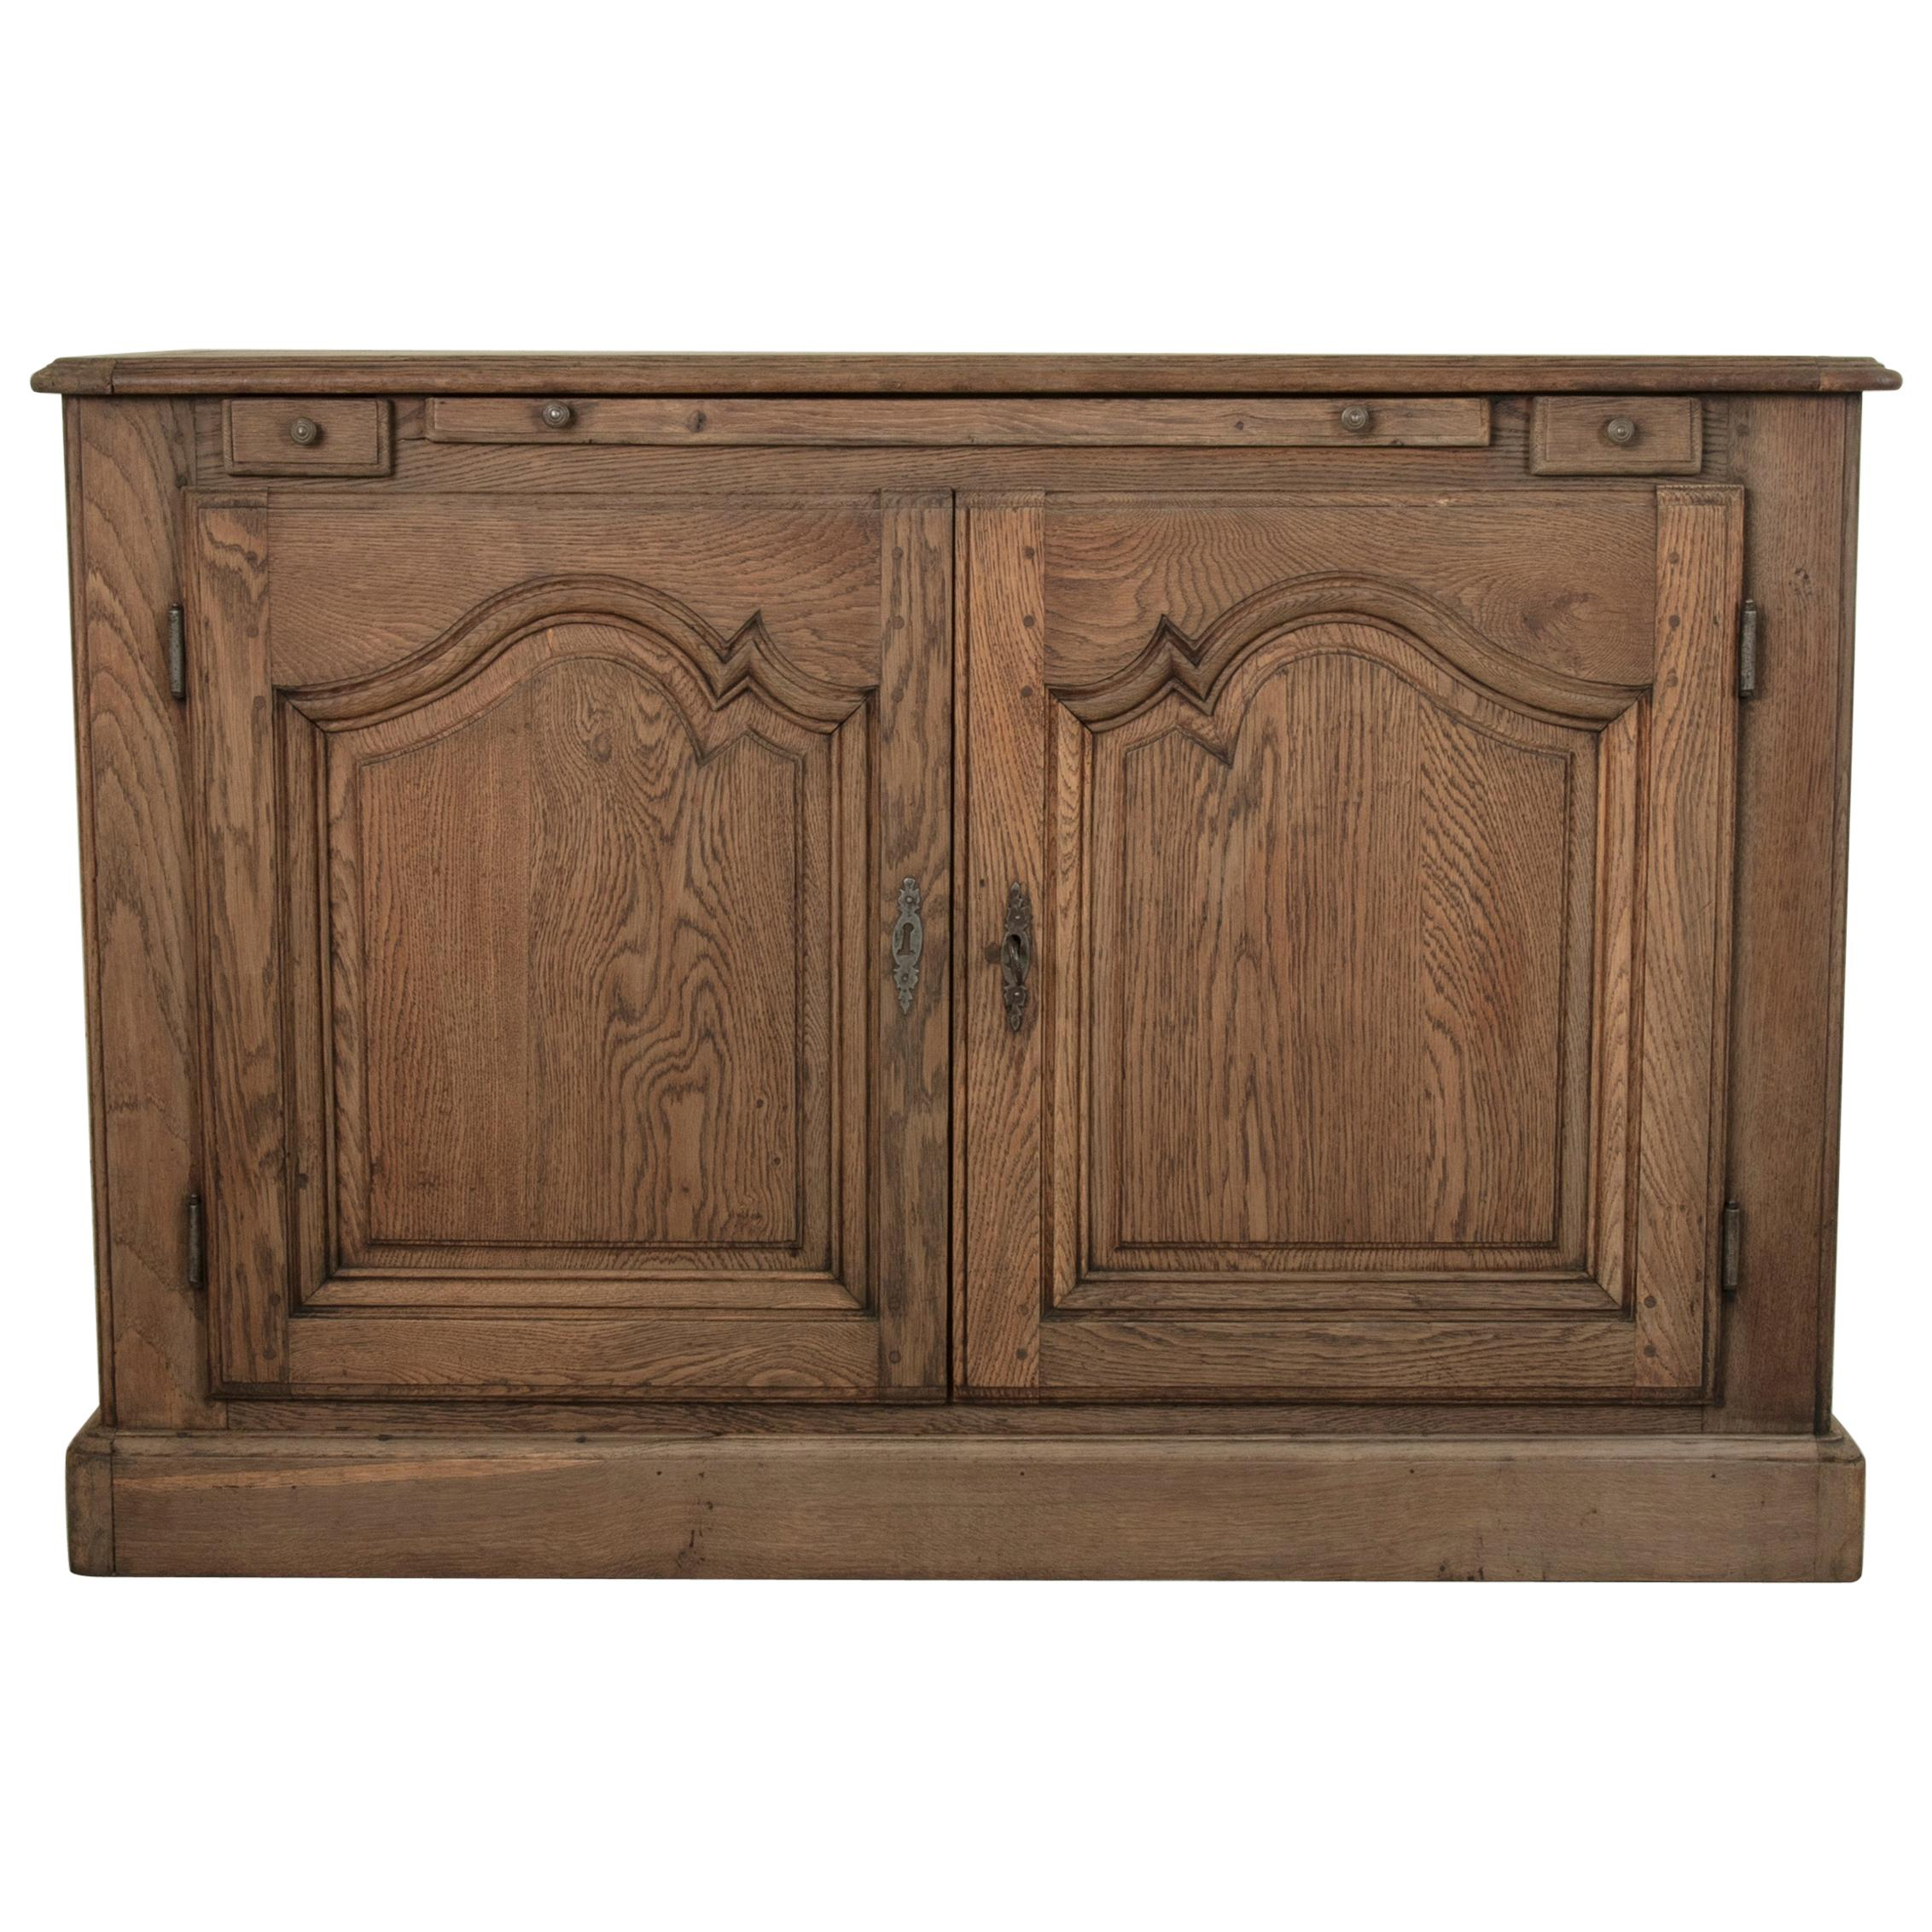 Late 18th Century French Louis XIV Style Stripped Oak Hunt Buffet or Sideboard